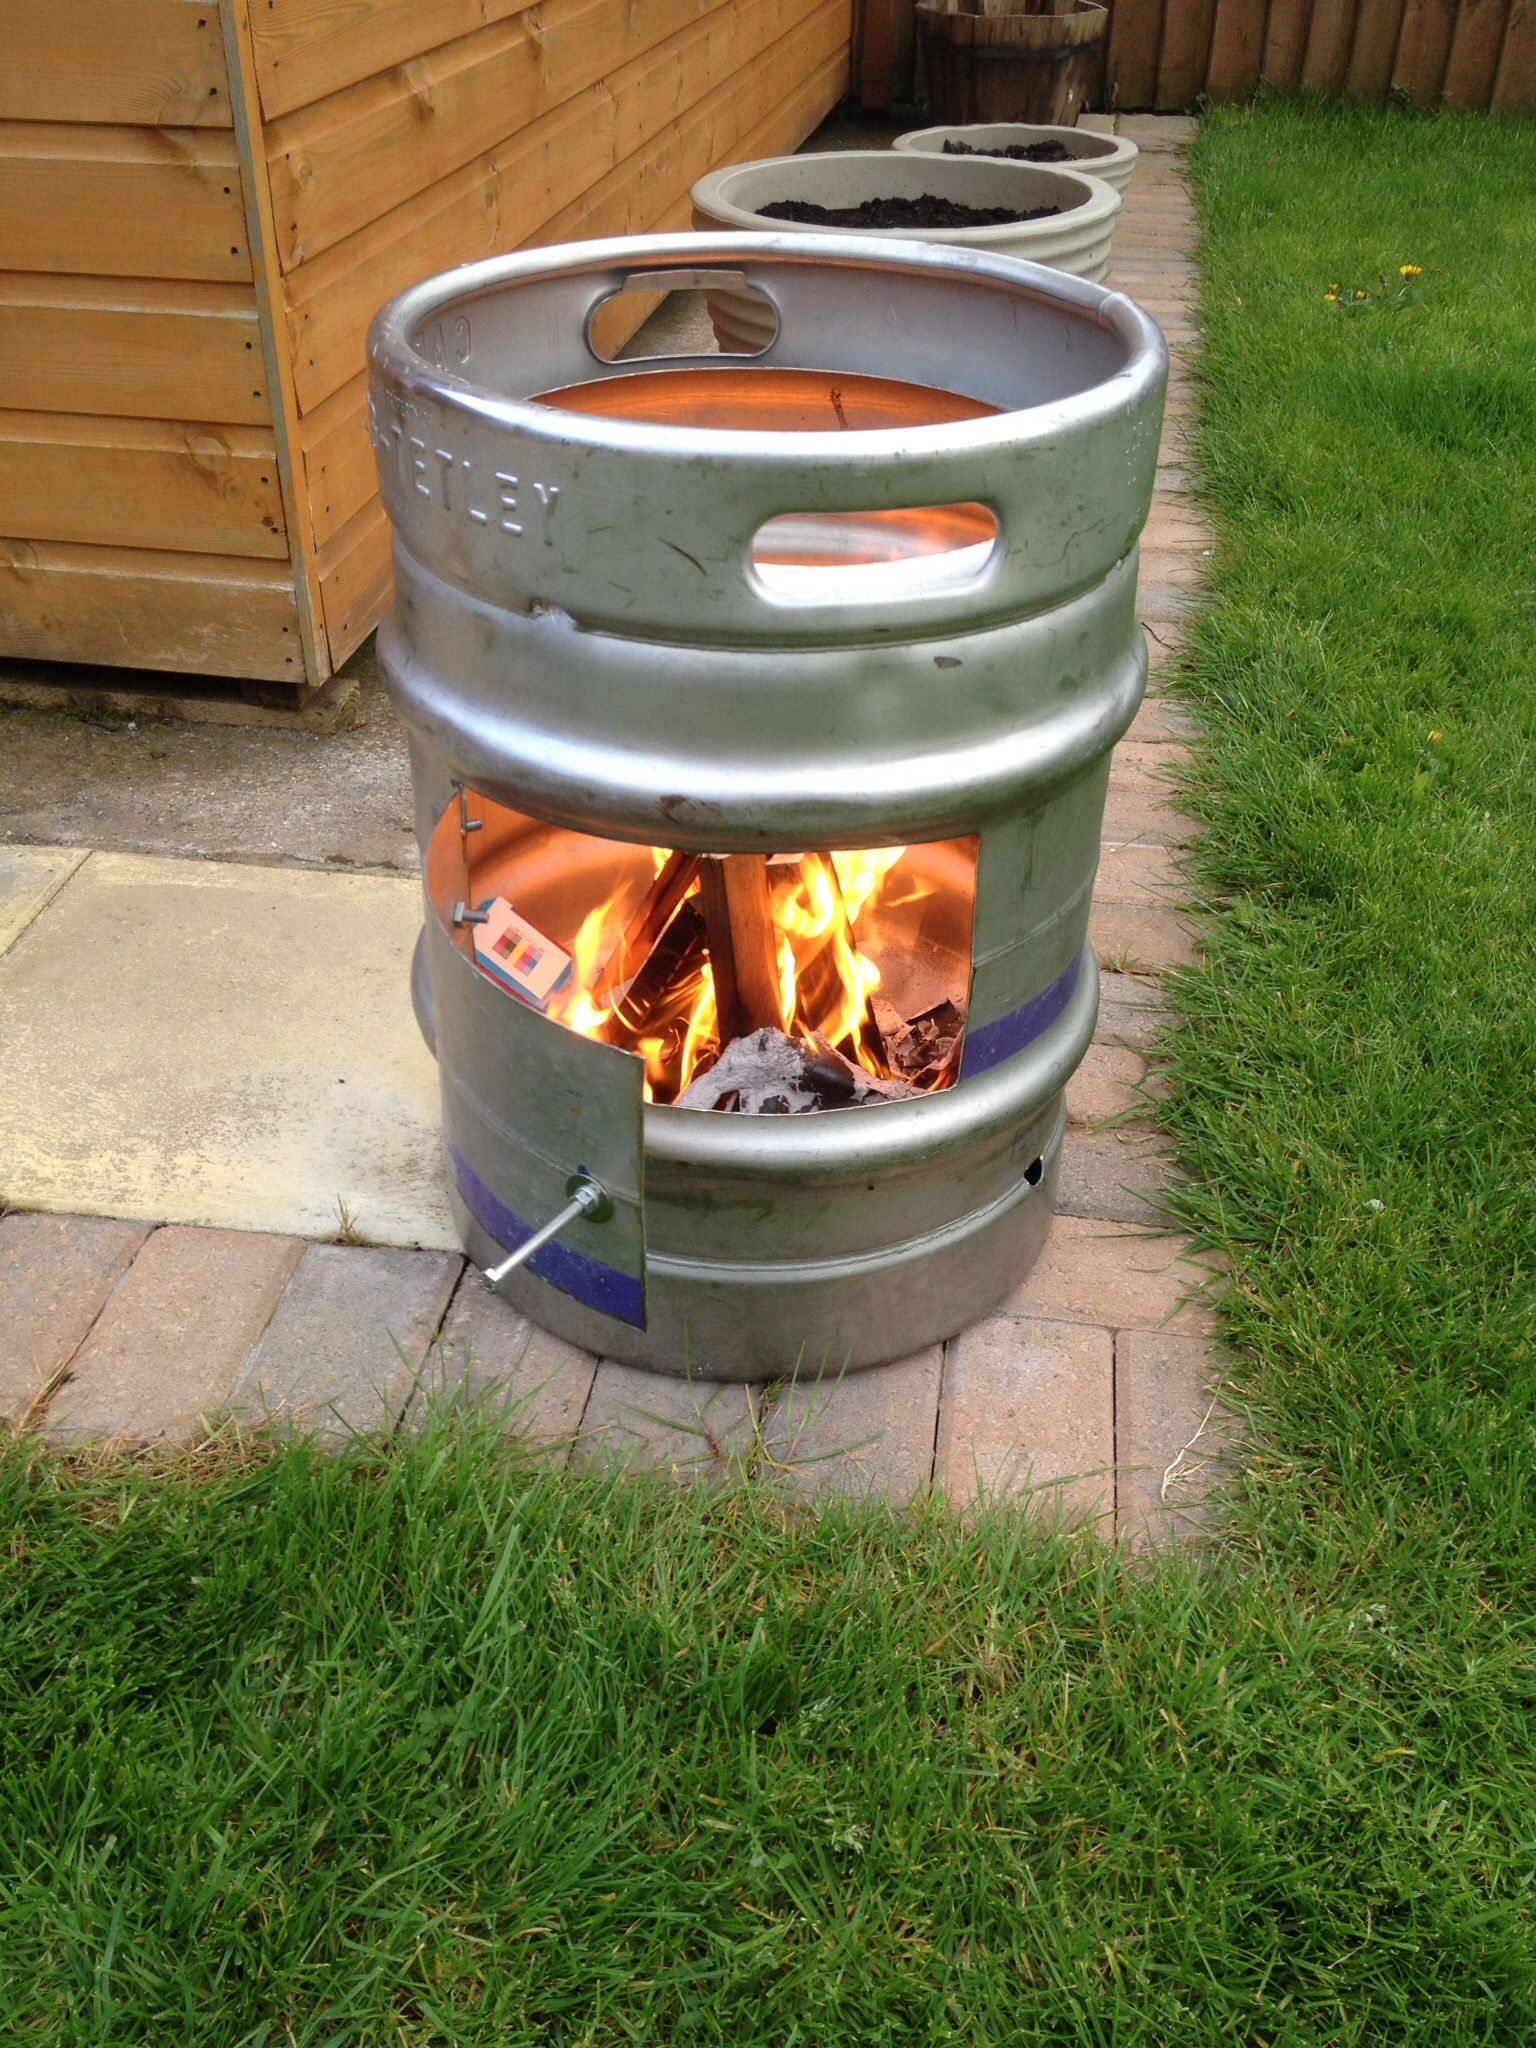 Backyard Urinal Ideas : Beer barrel wood burner projects to try in